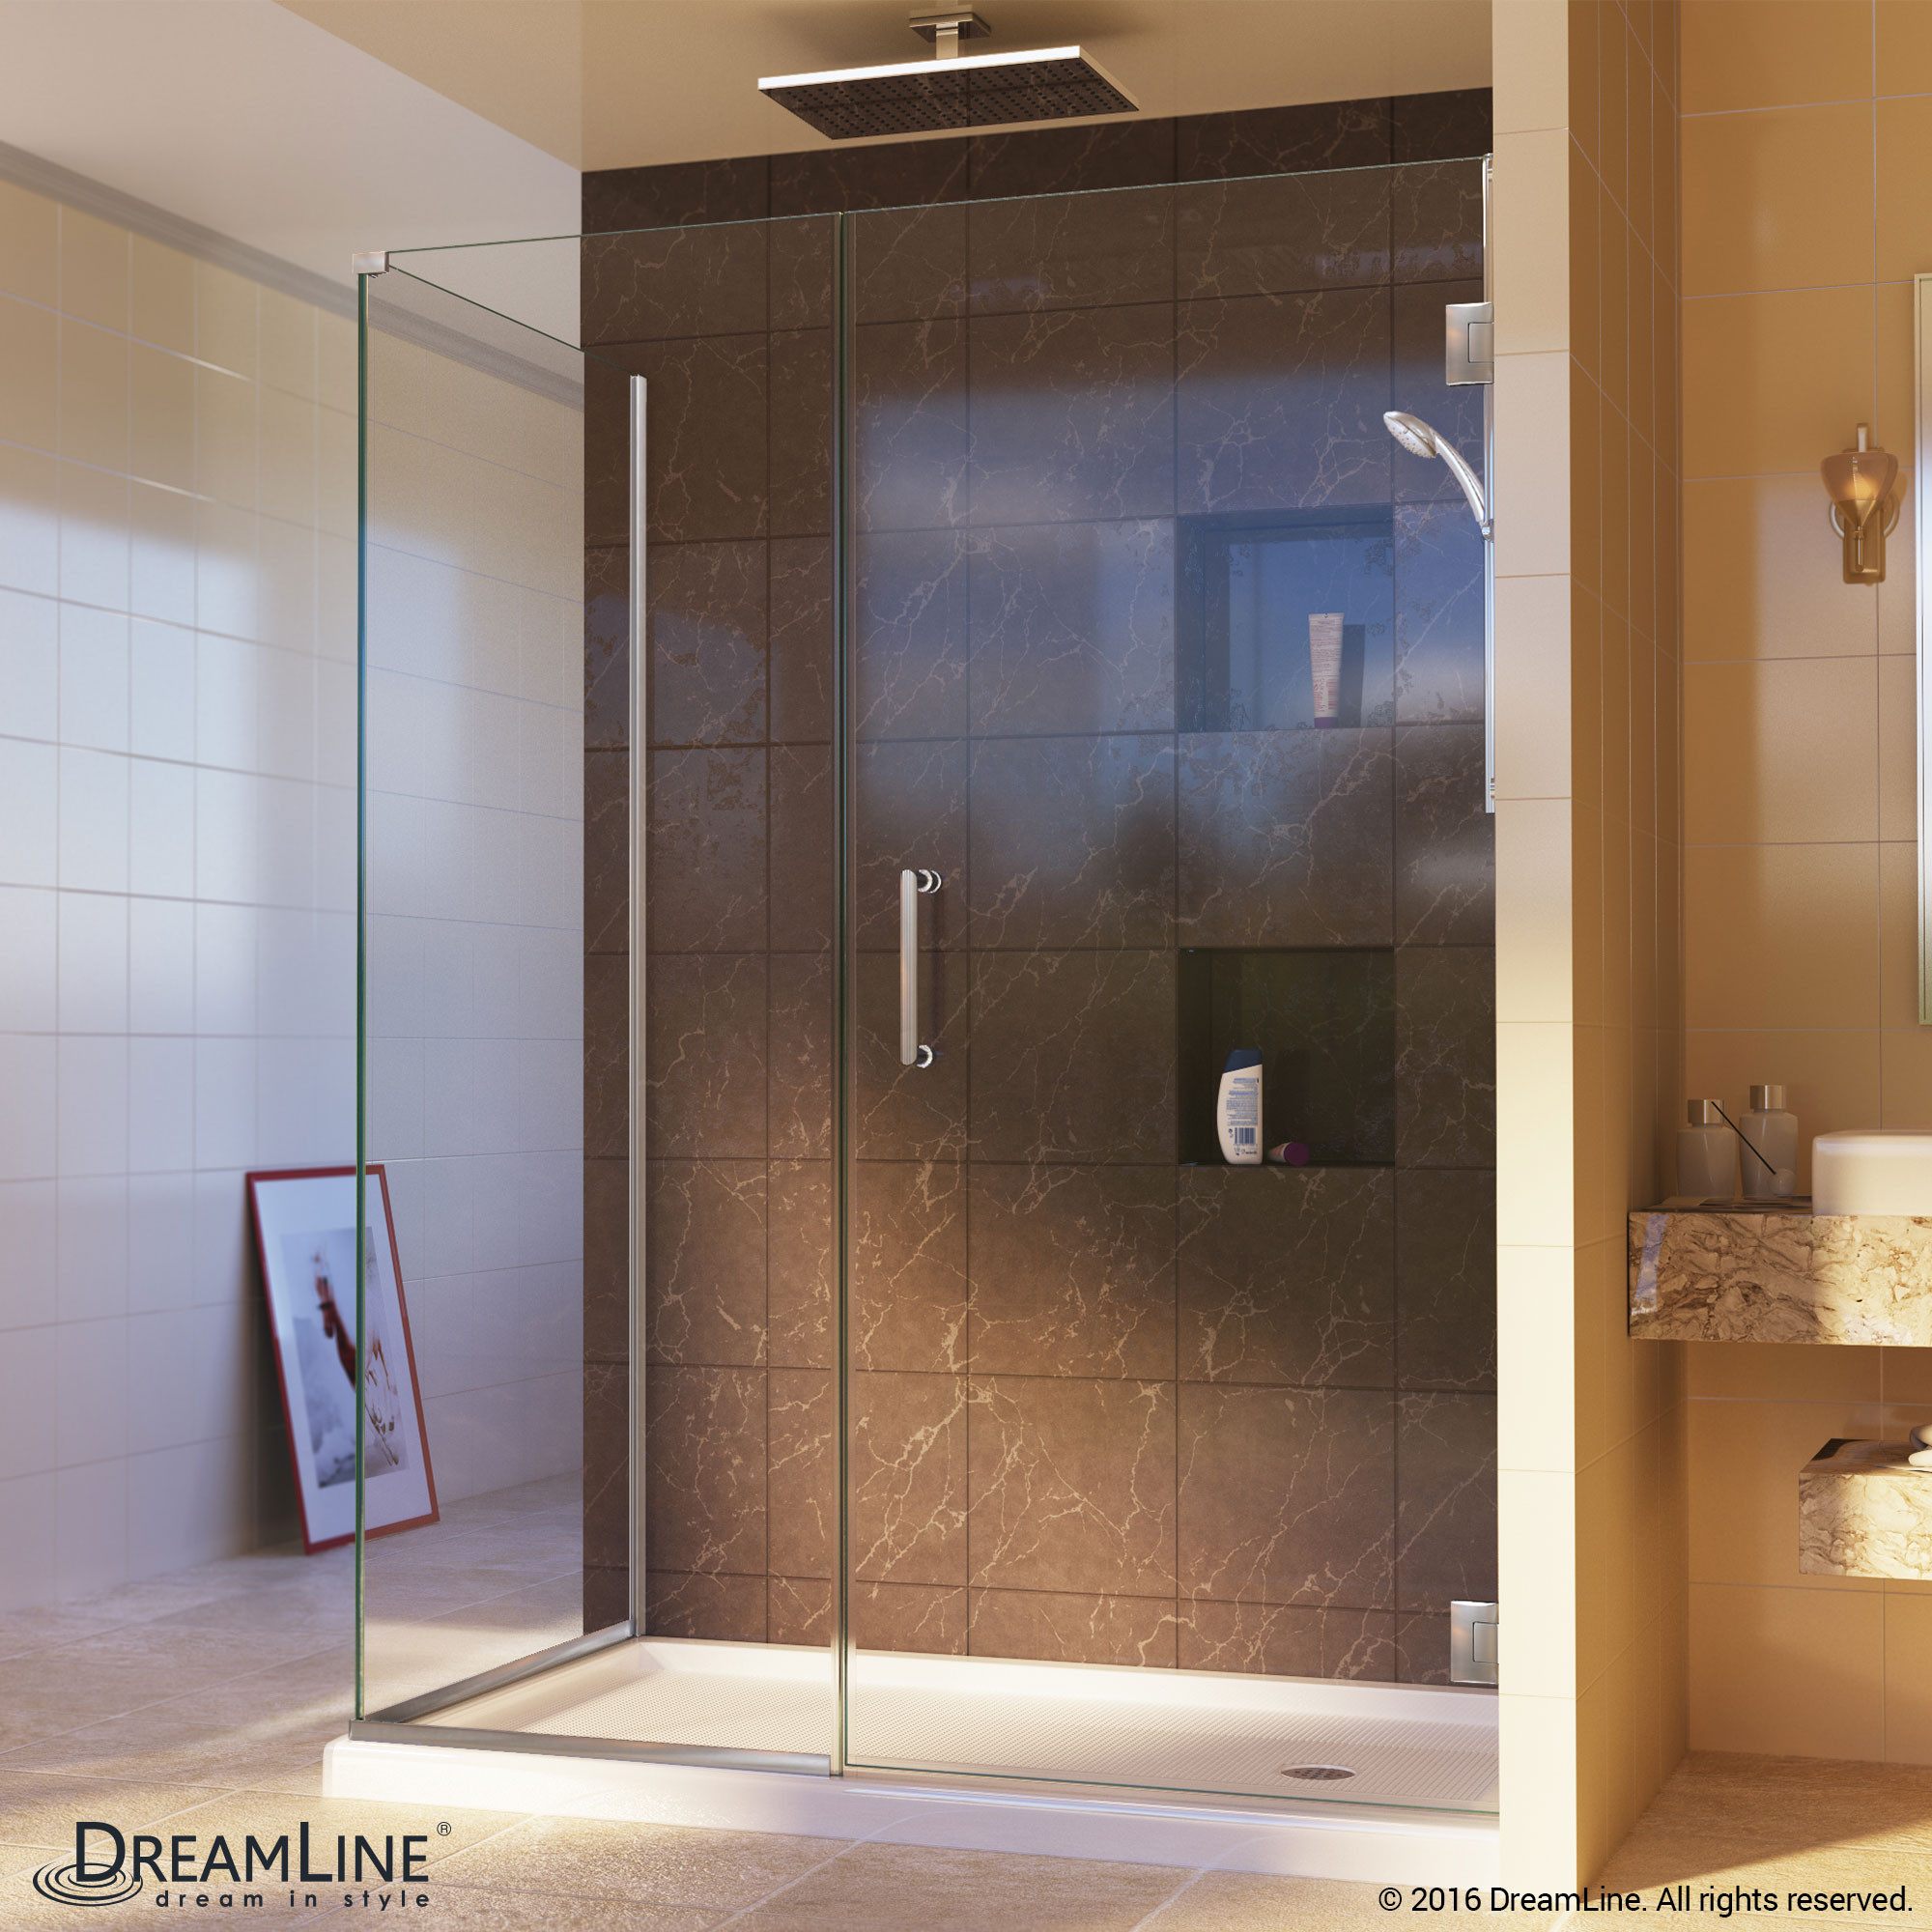 DreamLine SHEN-24600340-04 Unidoor Plus Hinged Shower Enclosure In Brushed Nickel Finish Hardware